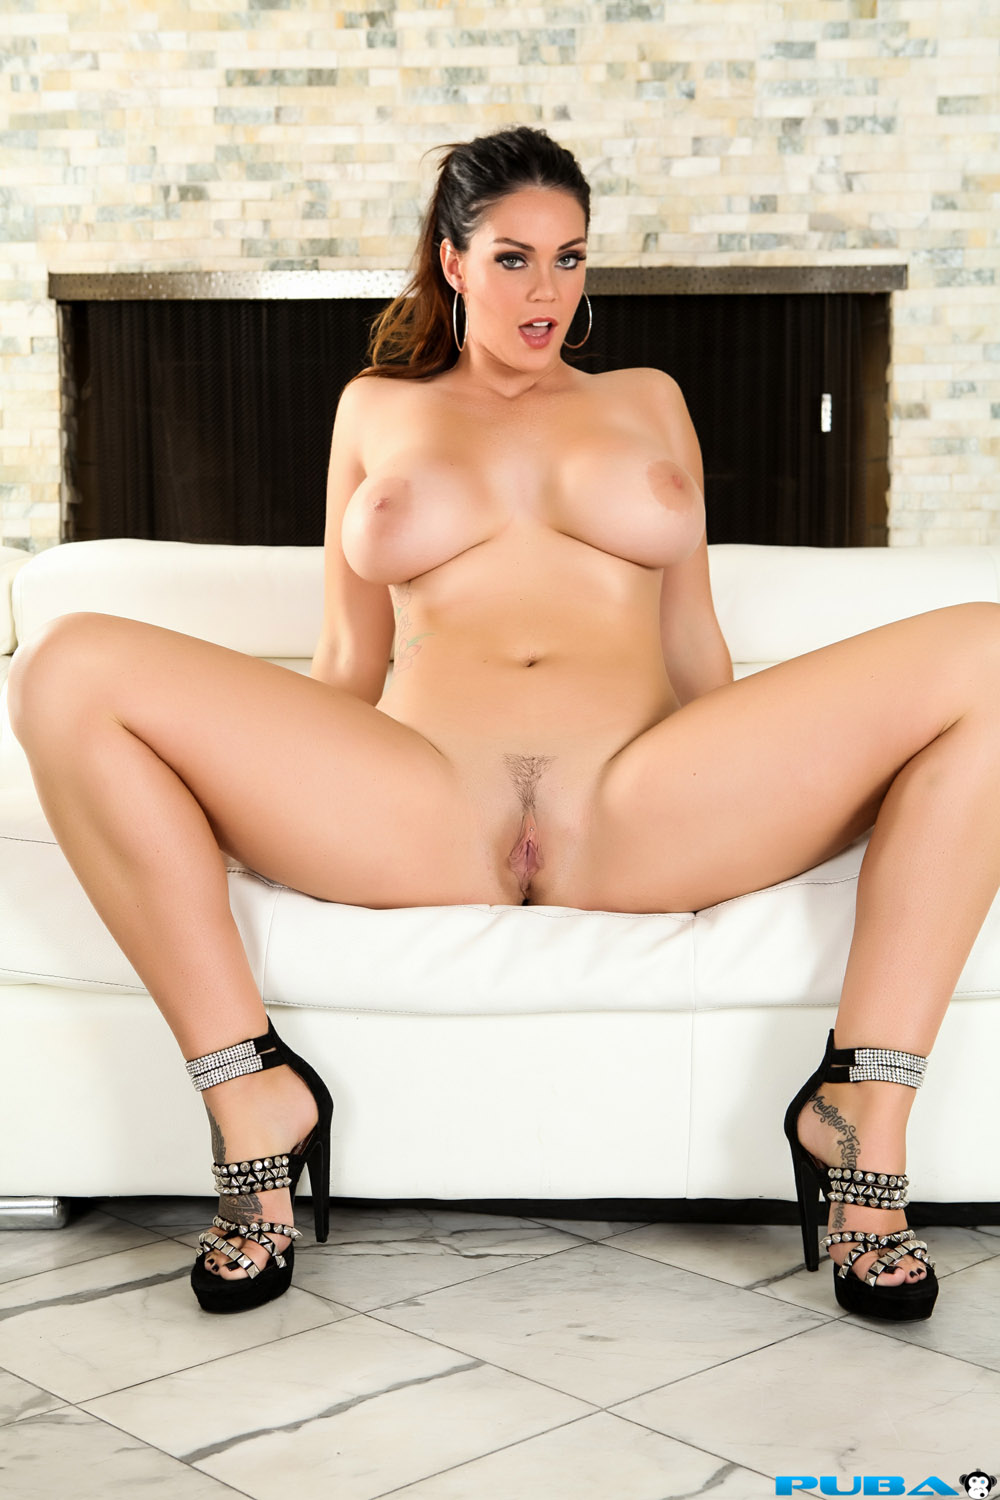 Your ALISON TYLER NUDE PICTURES